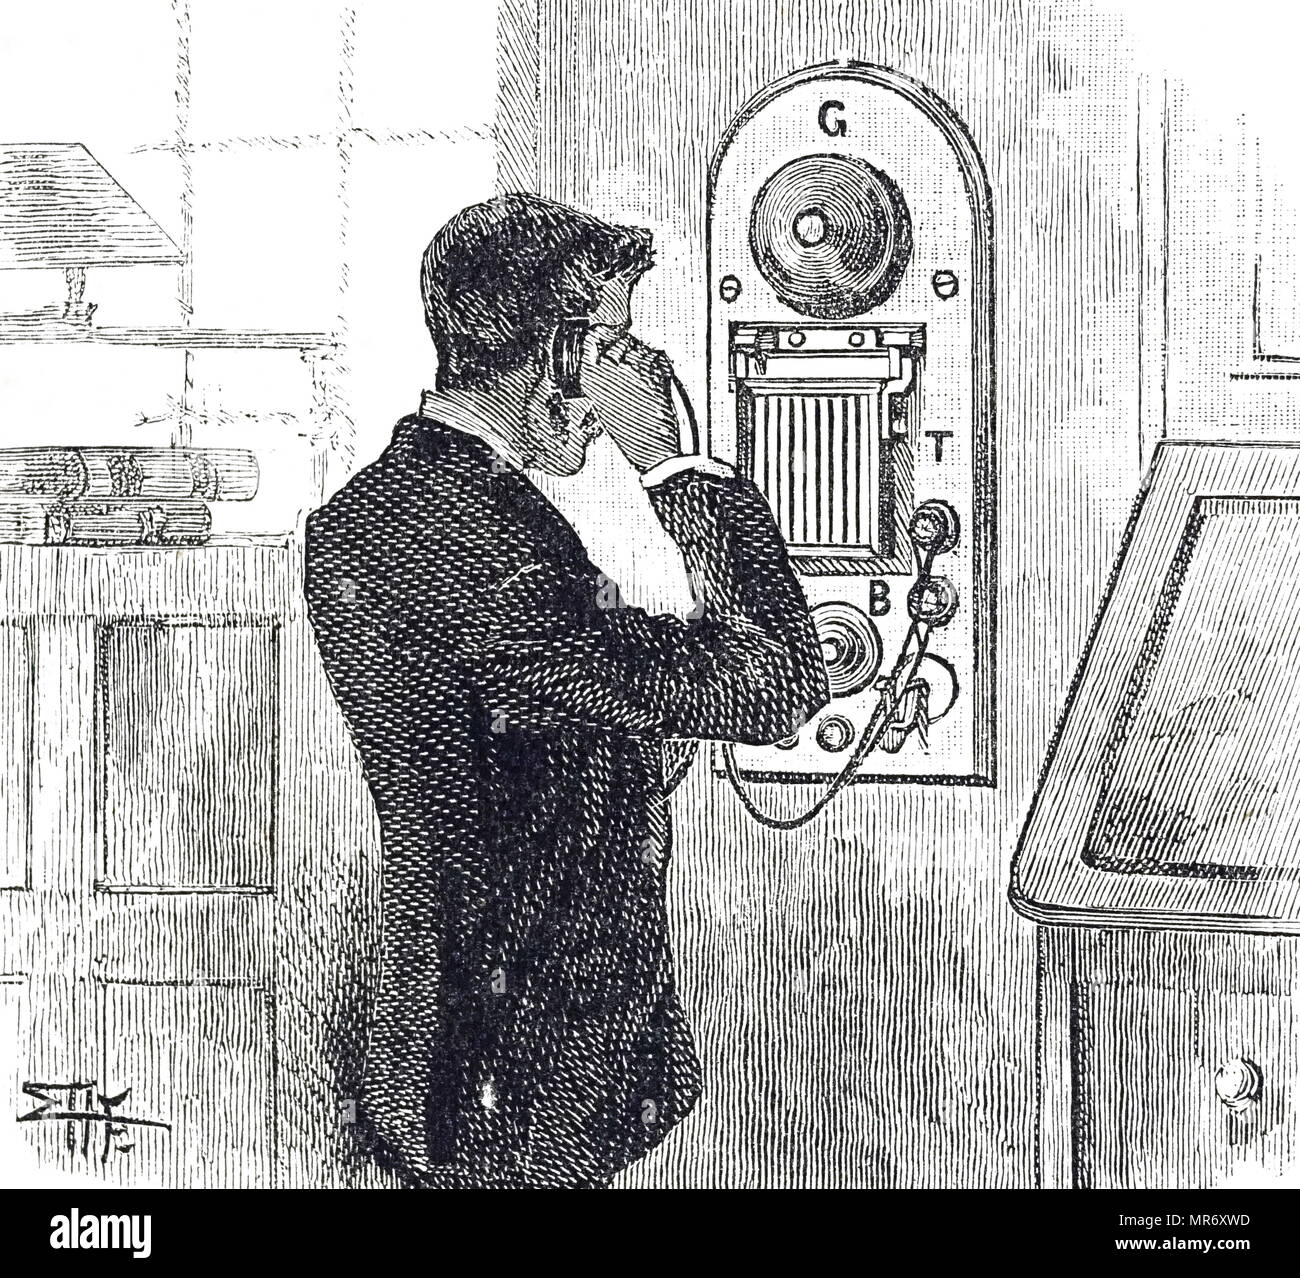 Engraving depicting Alan Archibald Campbell-Swinton's telephone. Alan Archibald Campbell-Swinton (1863-1930) a Scottish consulting electrical engineer. Dated 19th century - Stock Image